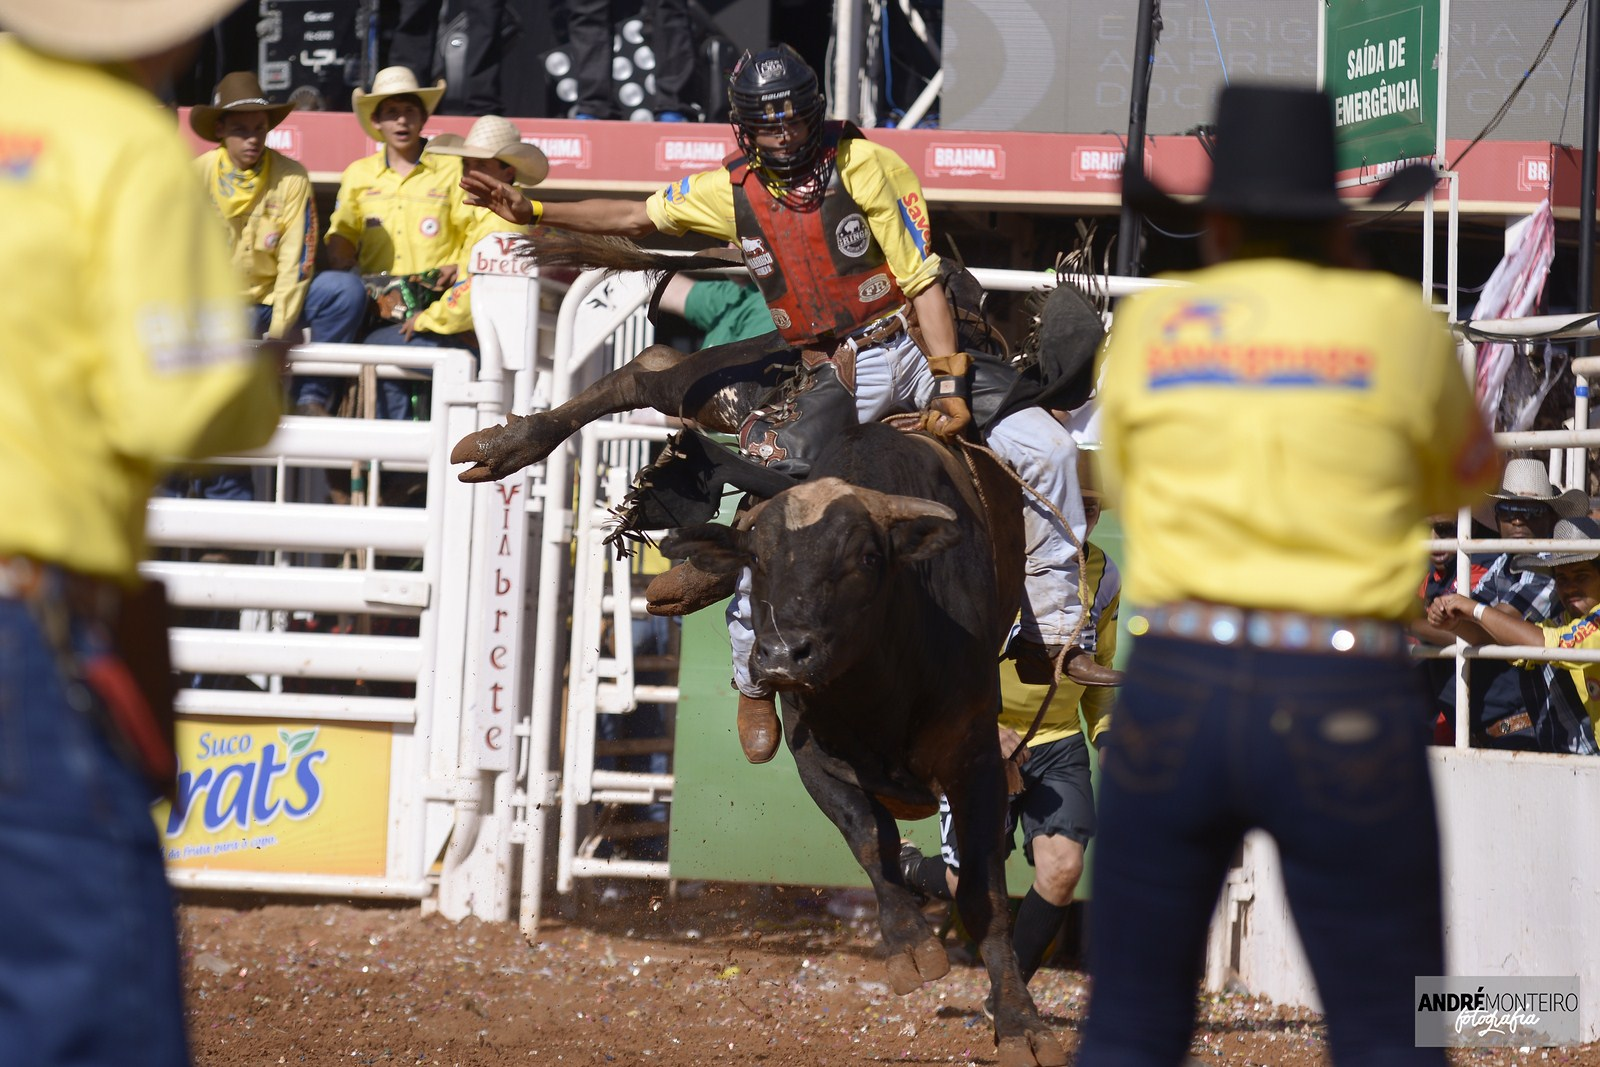 Barretos confirma competidores dos Estados Unidos e México na 26ª edição do Barretos International Rodeo 41